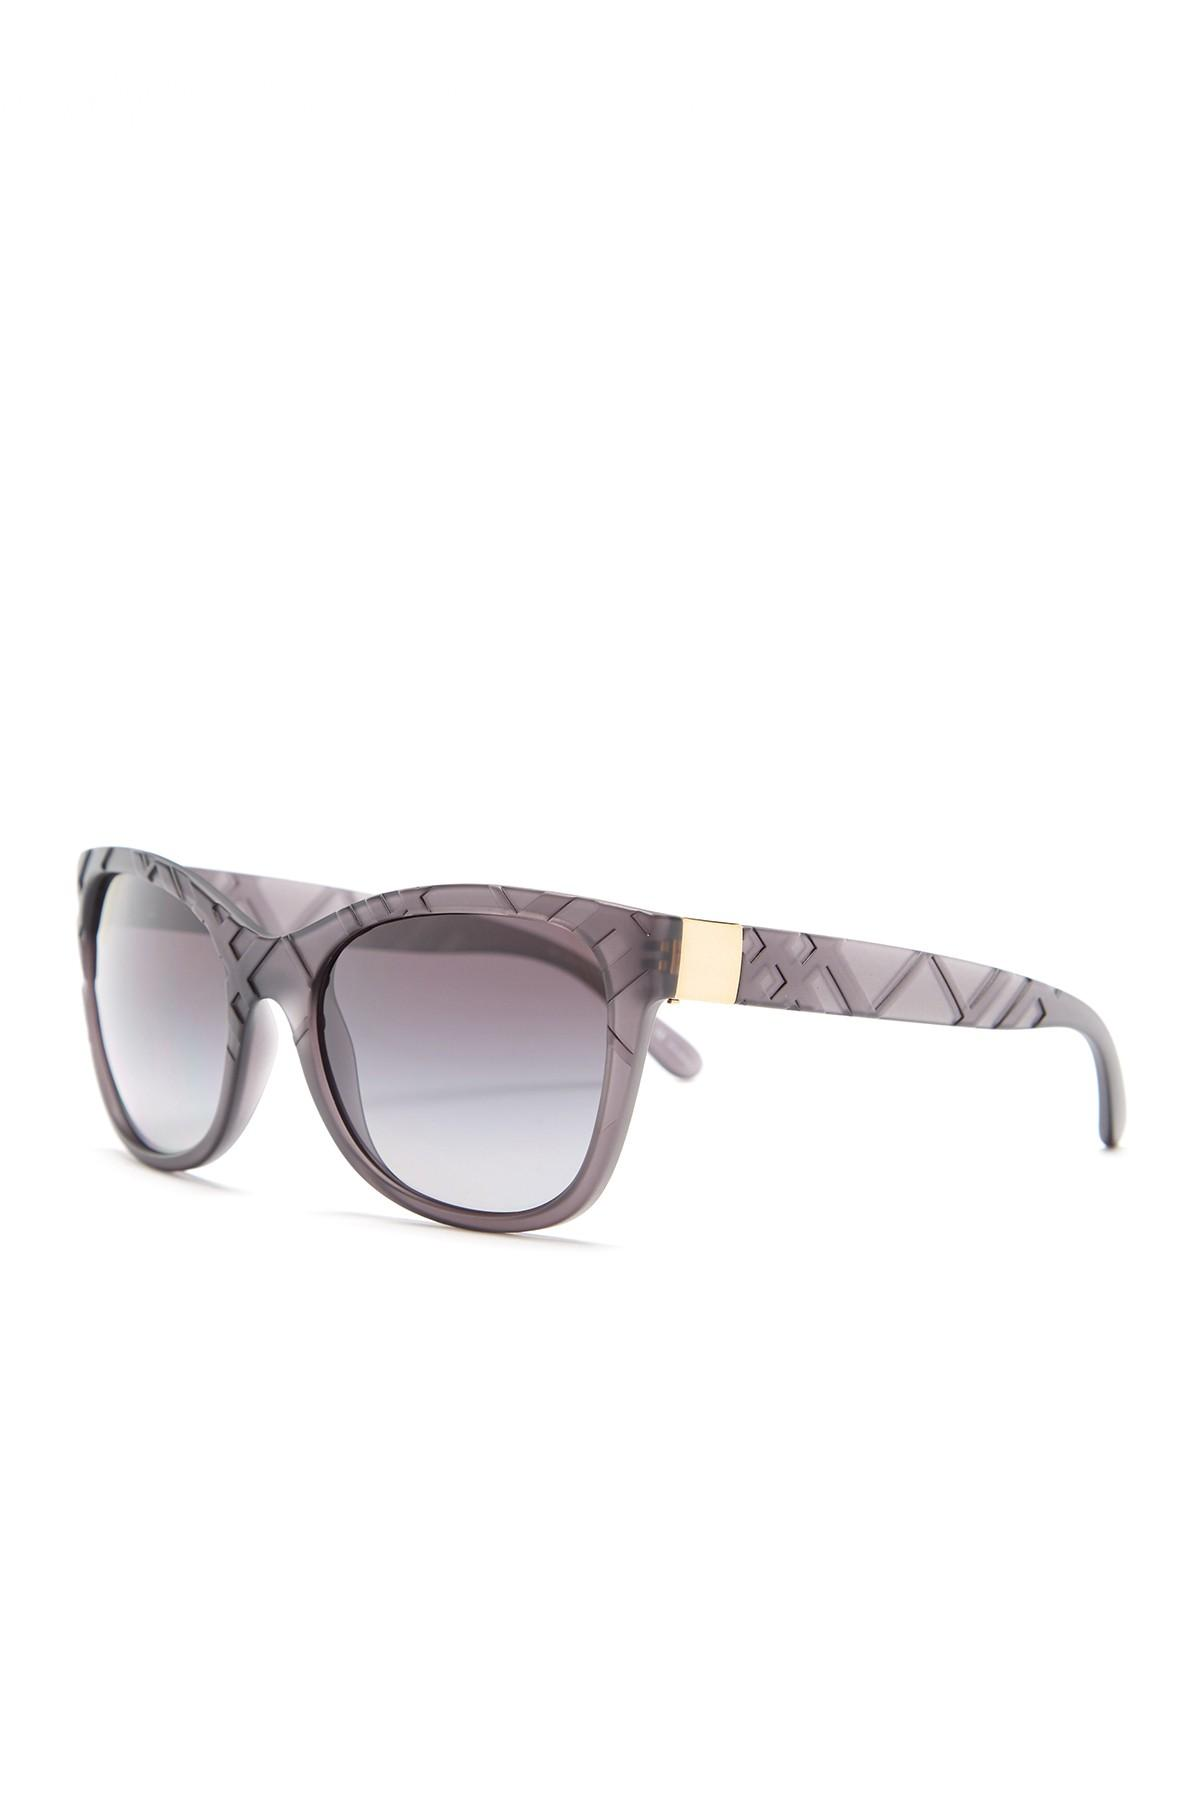 686768d7b2a Lyst - Burberry Women  39 s Square Injected Polarized Sunglasses in Gray